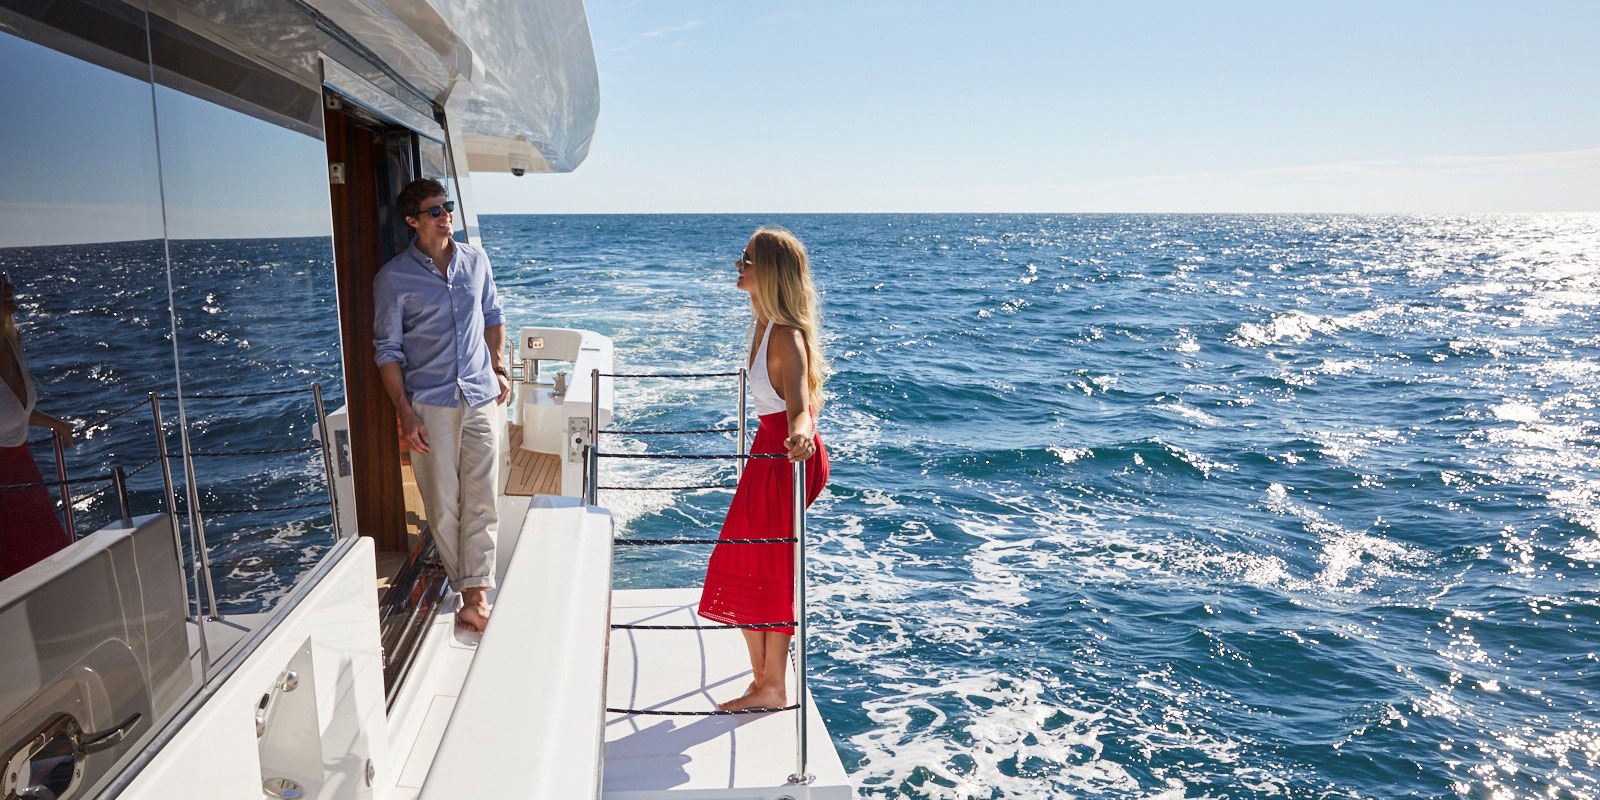 Hatteras M90 — Comfortable by Design